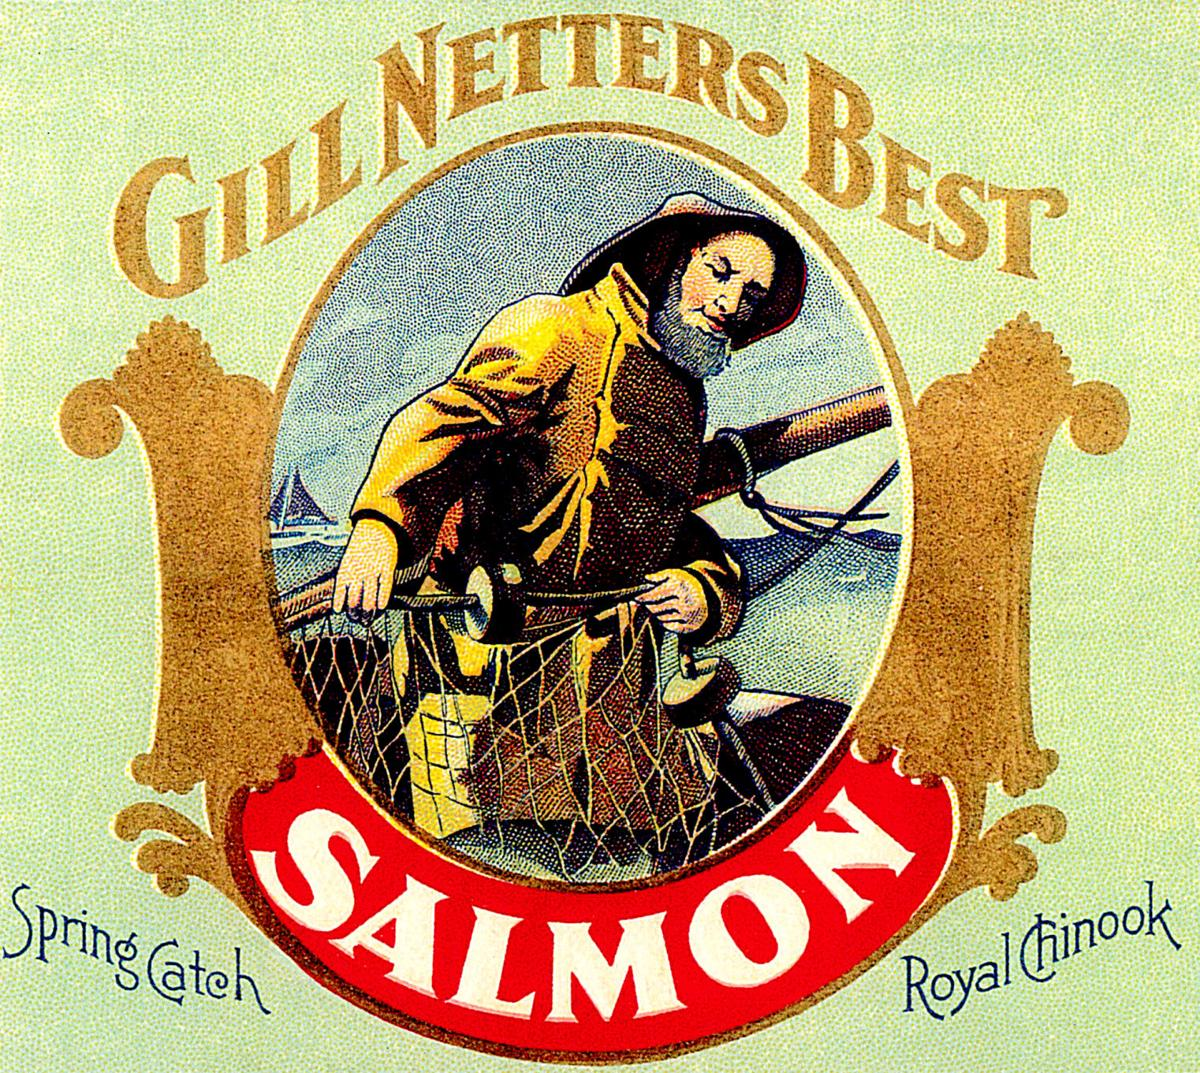 Salmon label detail